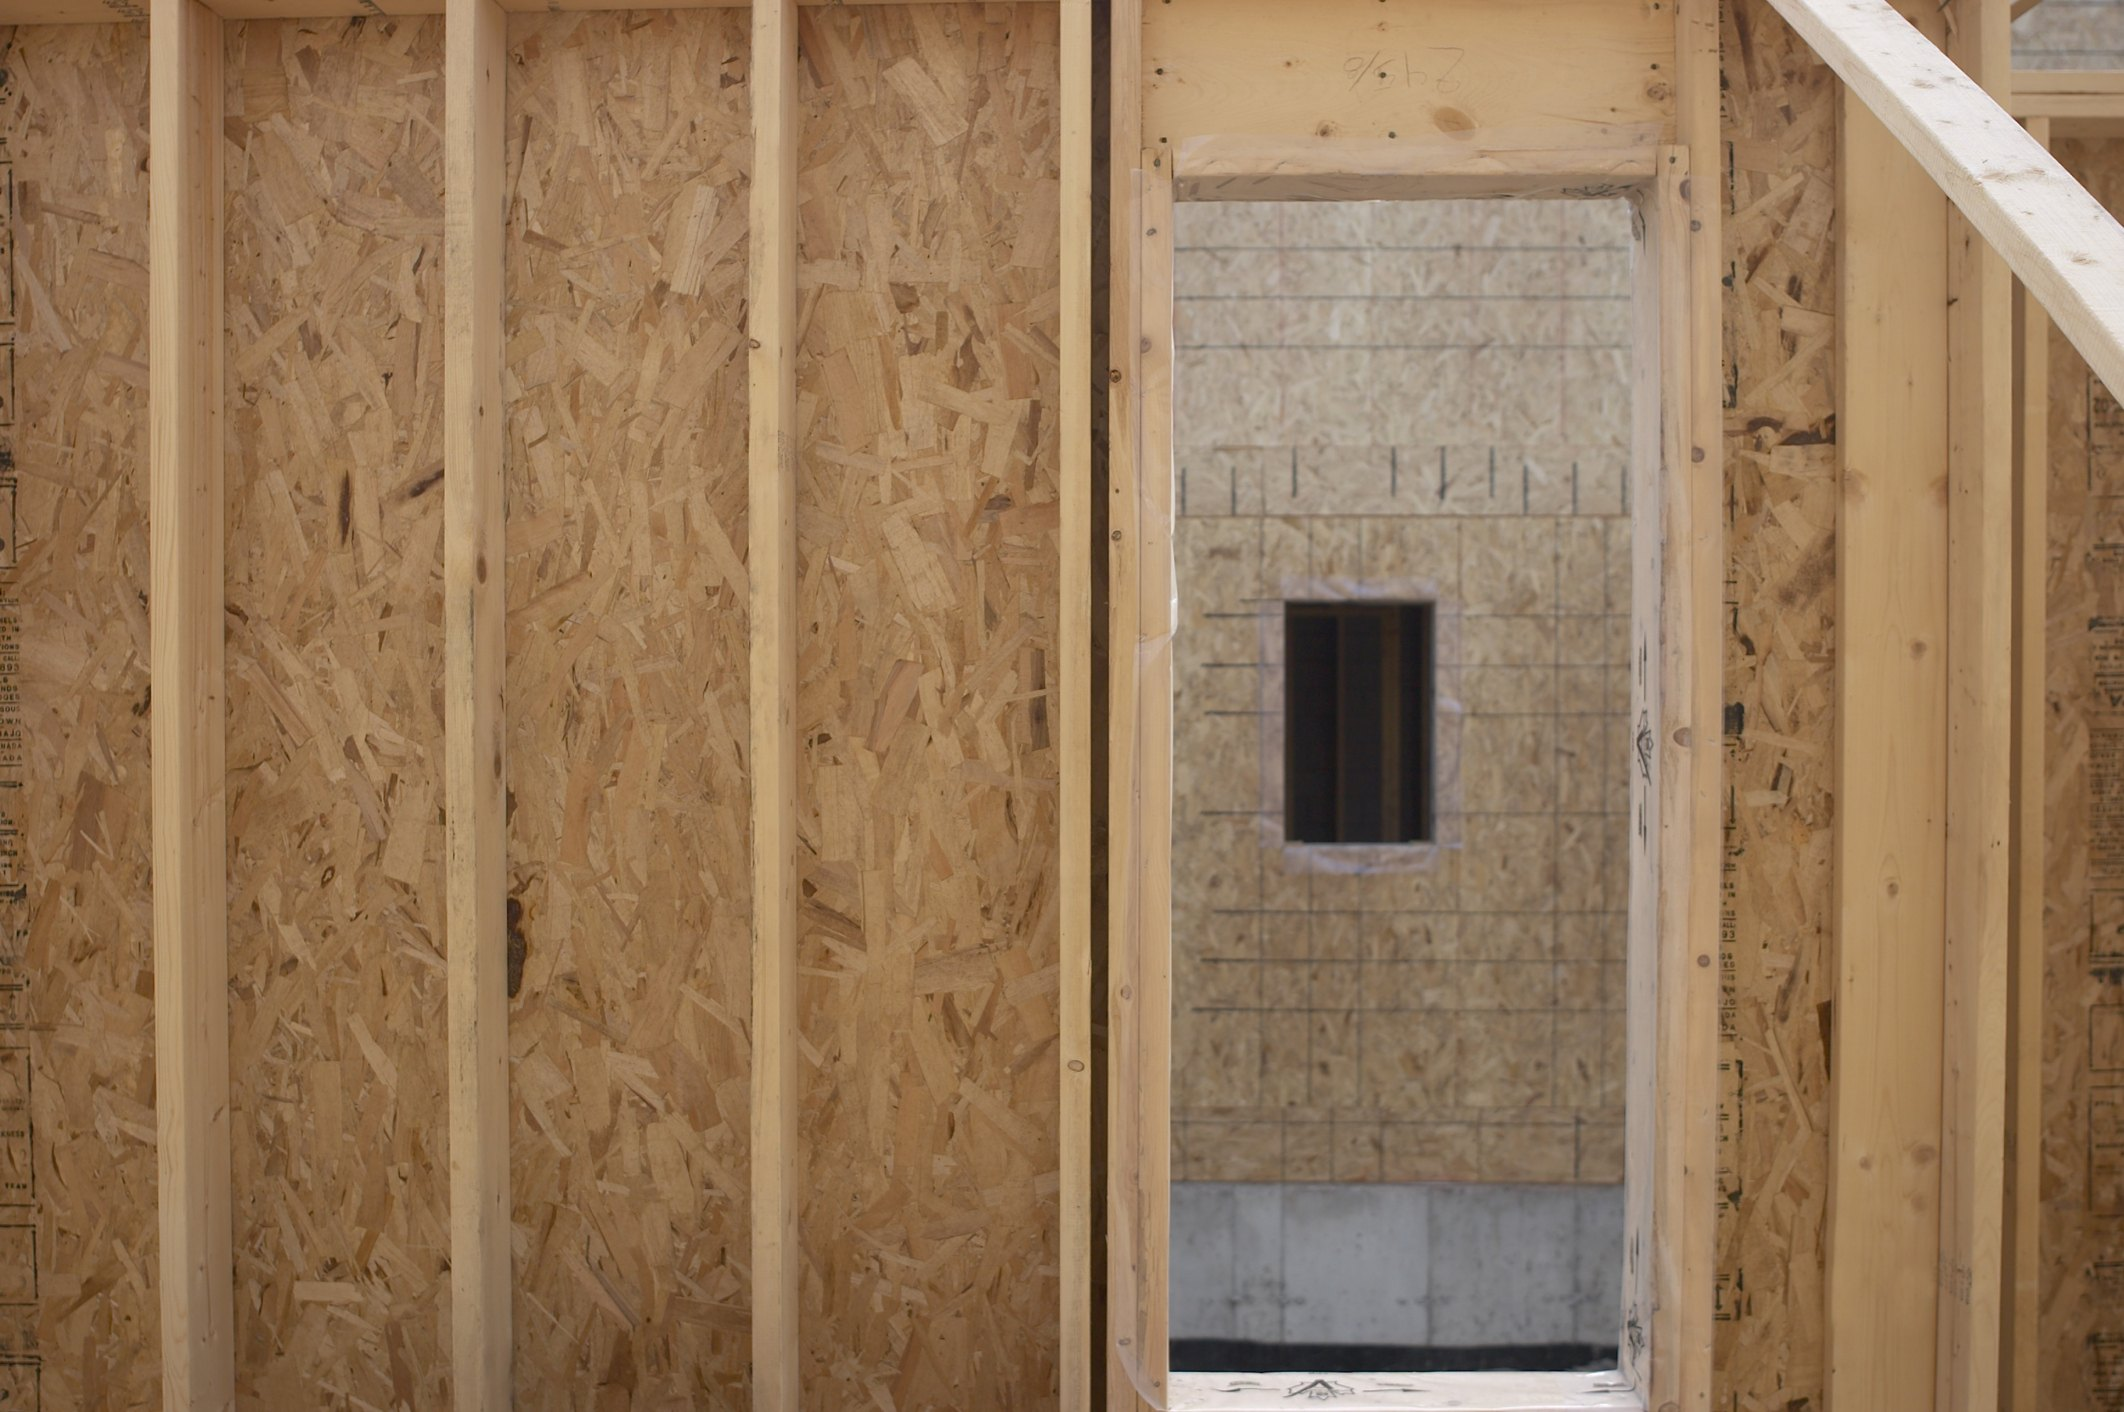 How to cut a rough opening for an exterior door ehow - Rough opening for exterior 36 inch door ...